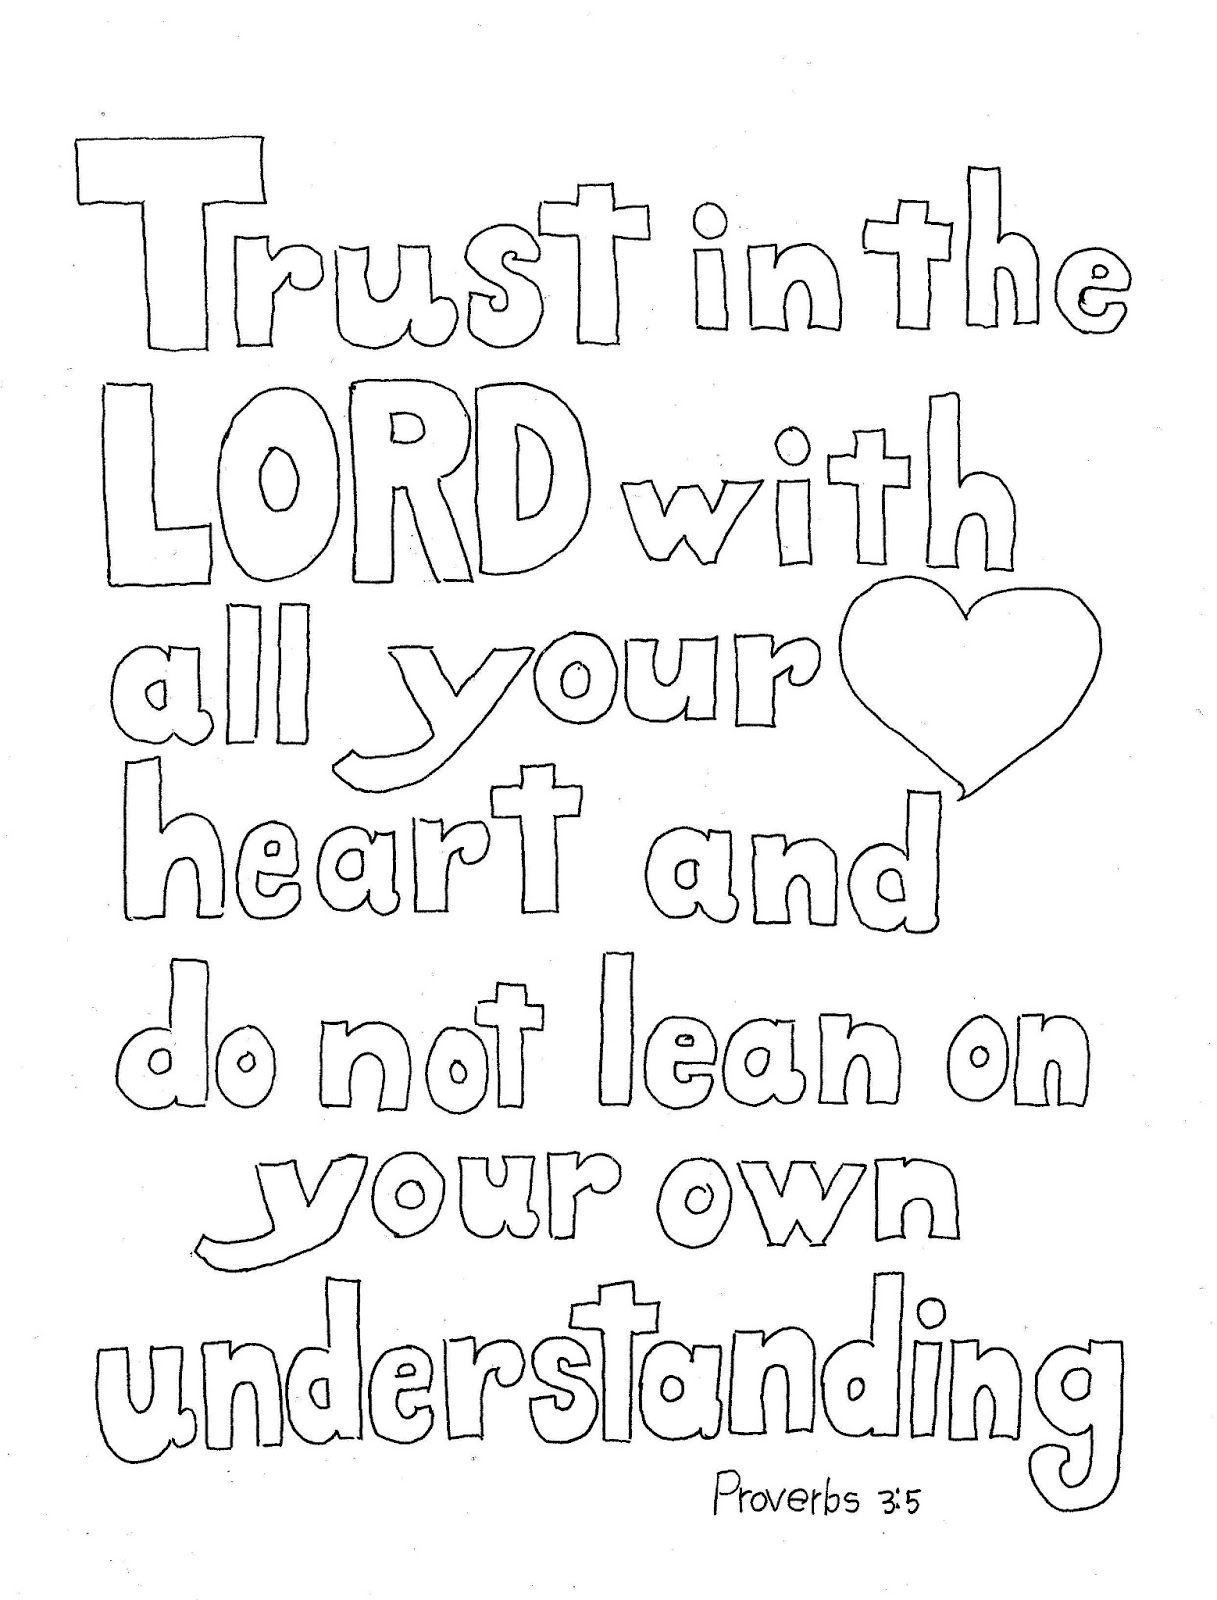 Childrens christian valentine coloring pages - Coloring Pages For Kids By Mr Adron Trust In The Lord Scripture Print And